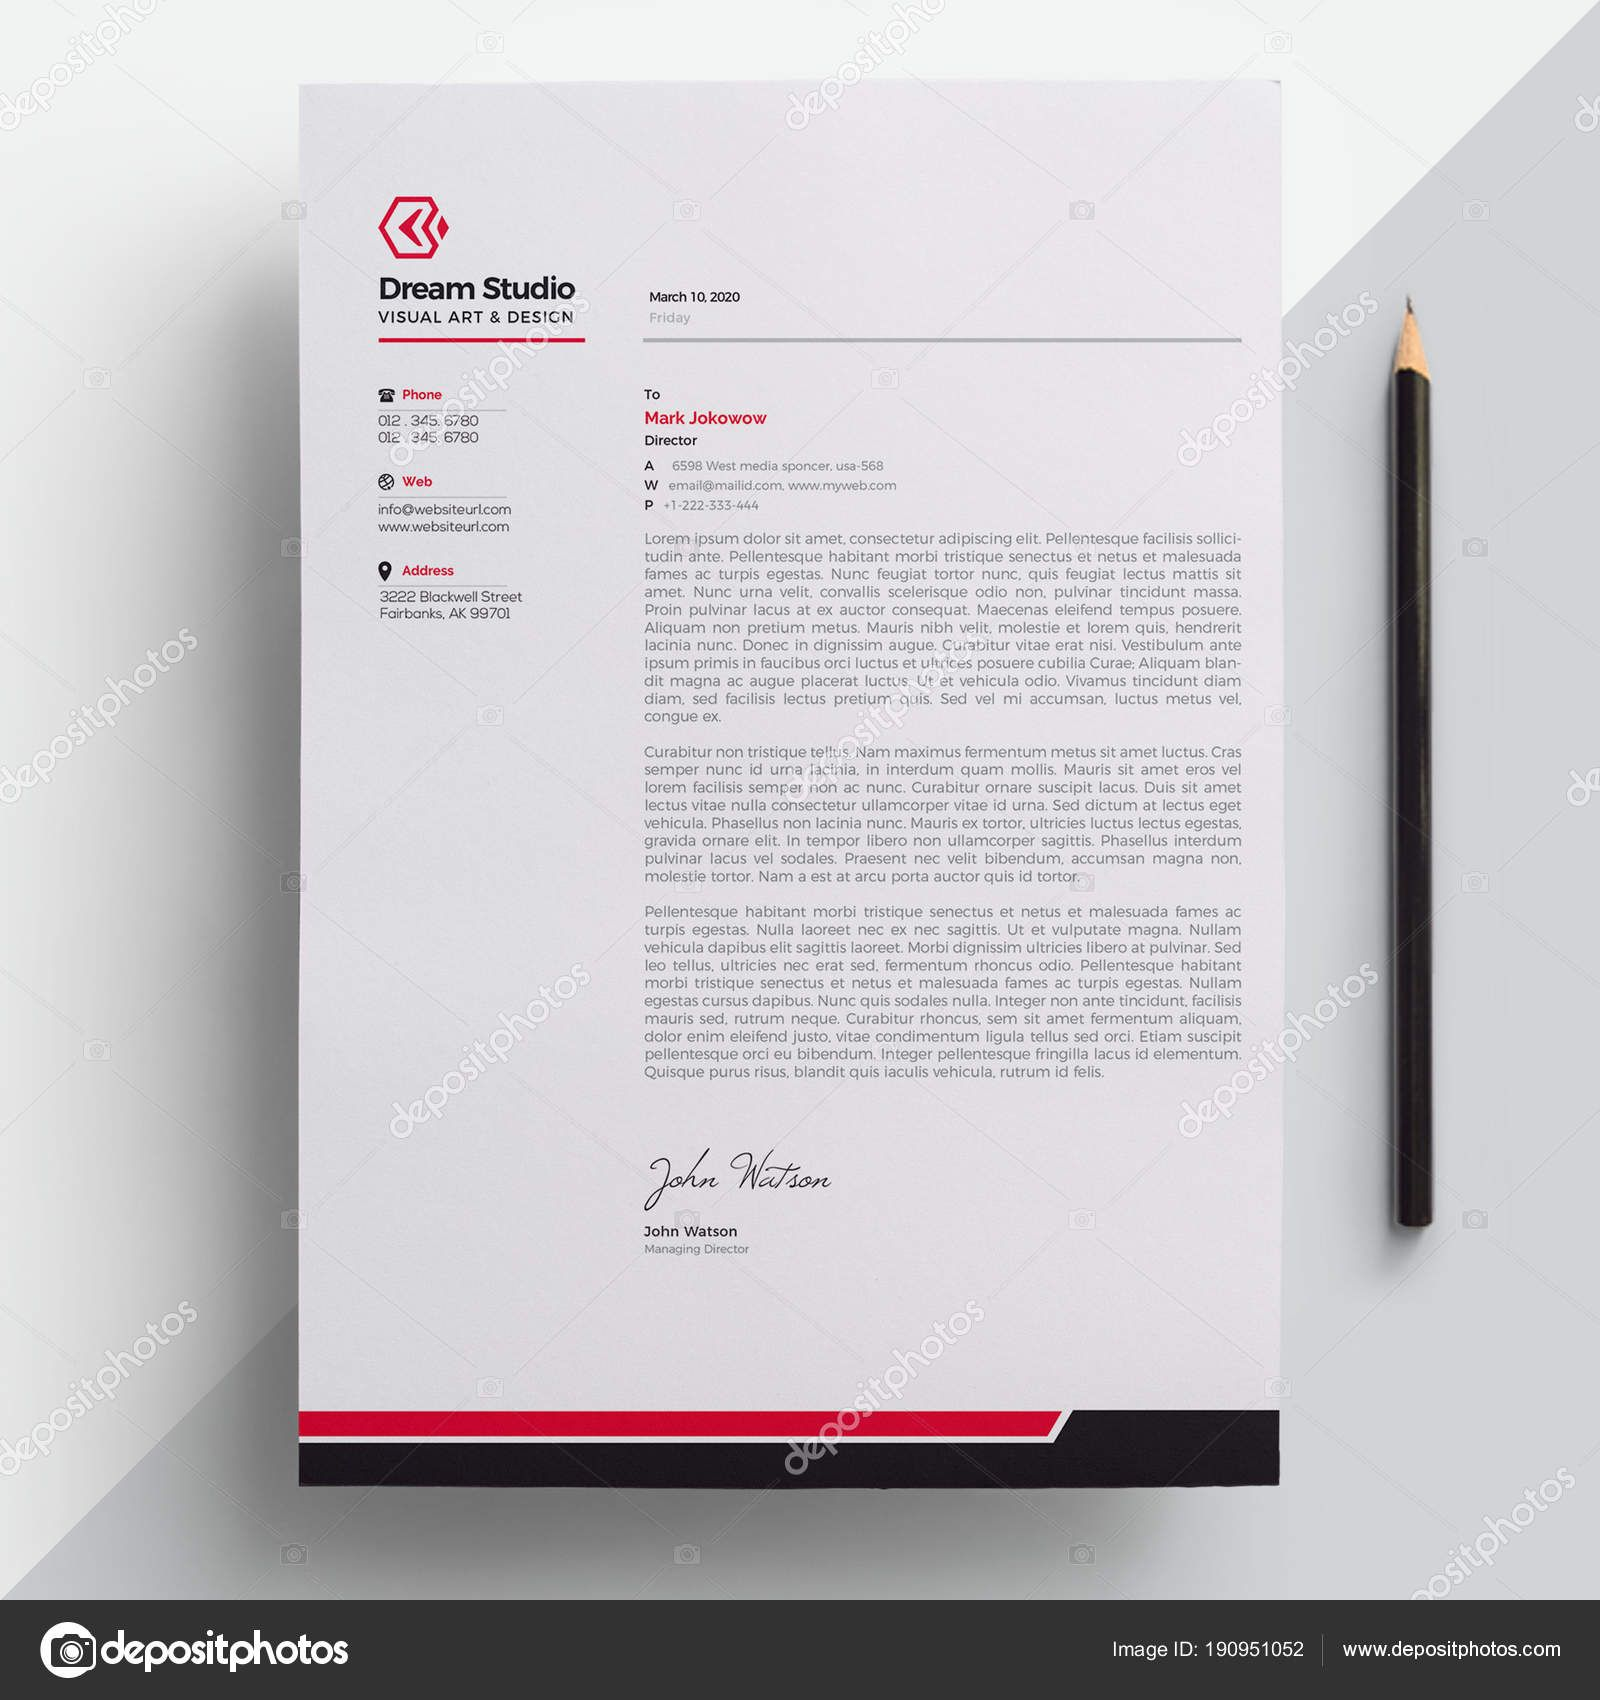 download modern company letterhead template — stock finance business partner resume sample objective for fresh graduate summary of qualifications cv